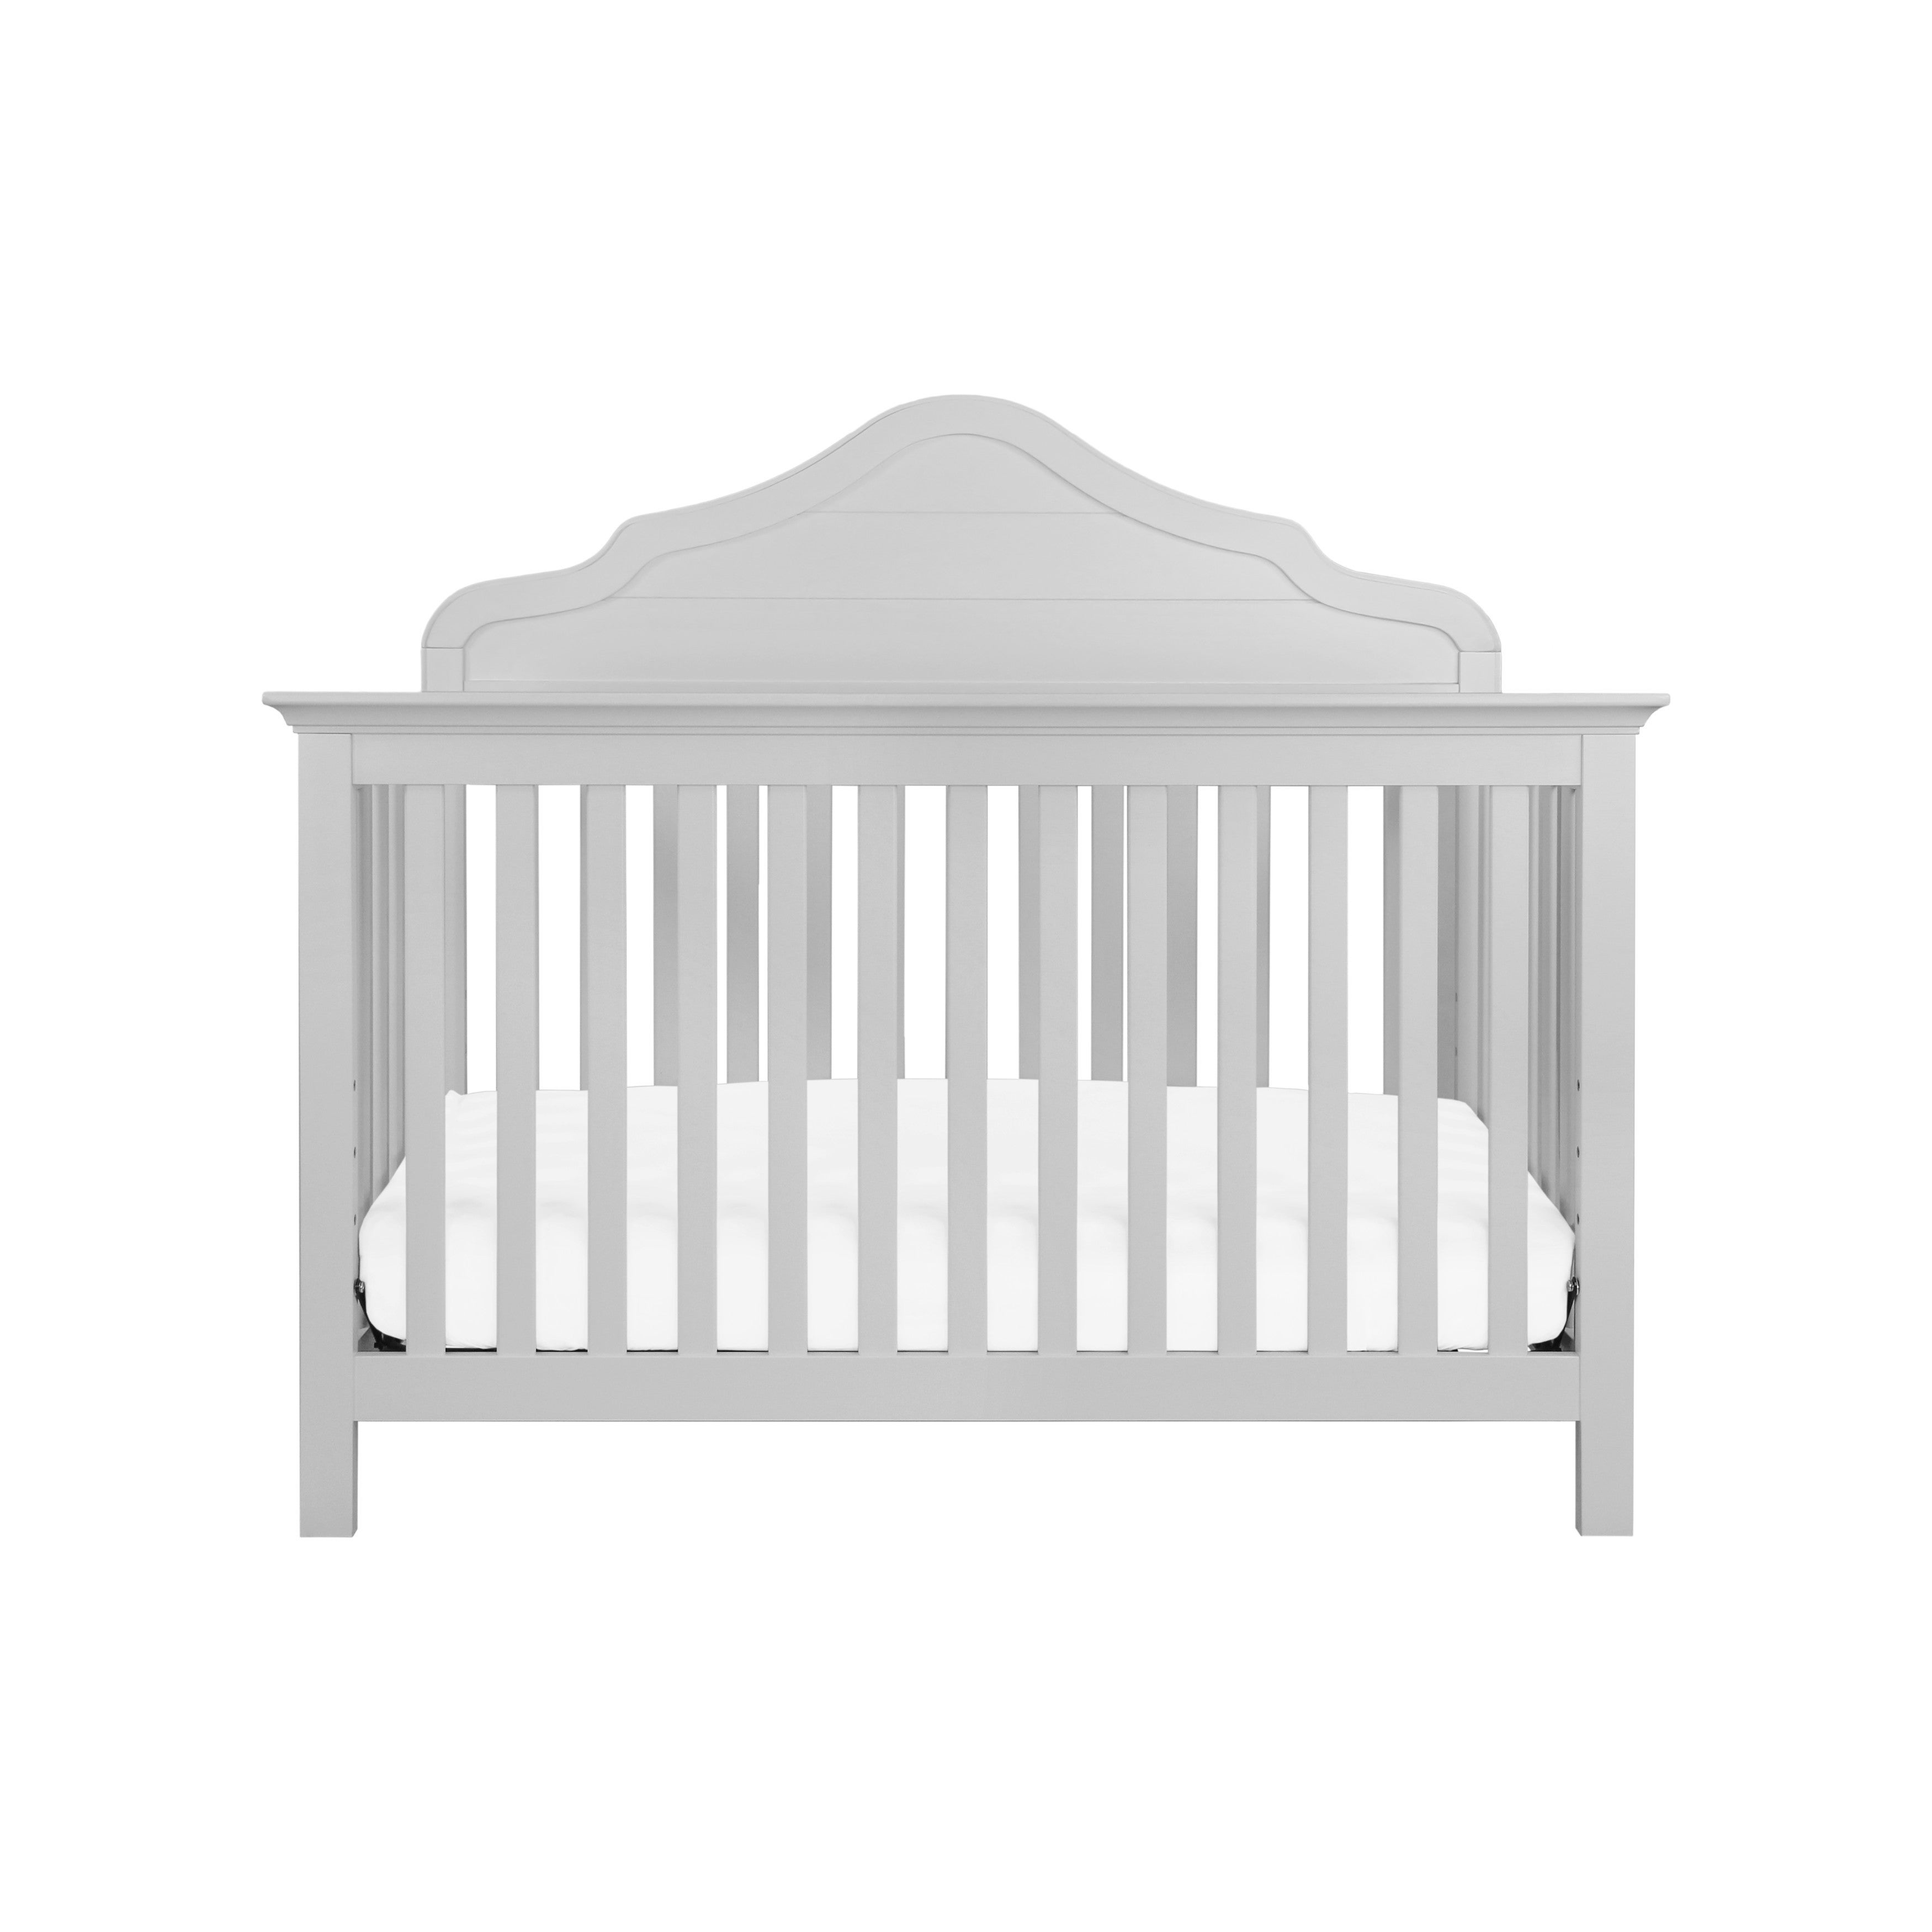 that crib toysrus incredibly bed versatile use convertible kalani be made gentle pin images can features com beautifully construction for and curves a product in as converted davinci s toddler truimg sturdy